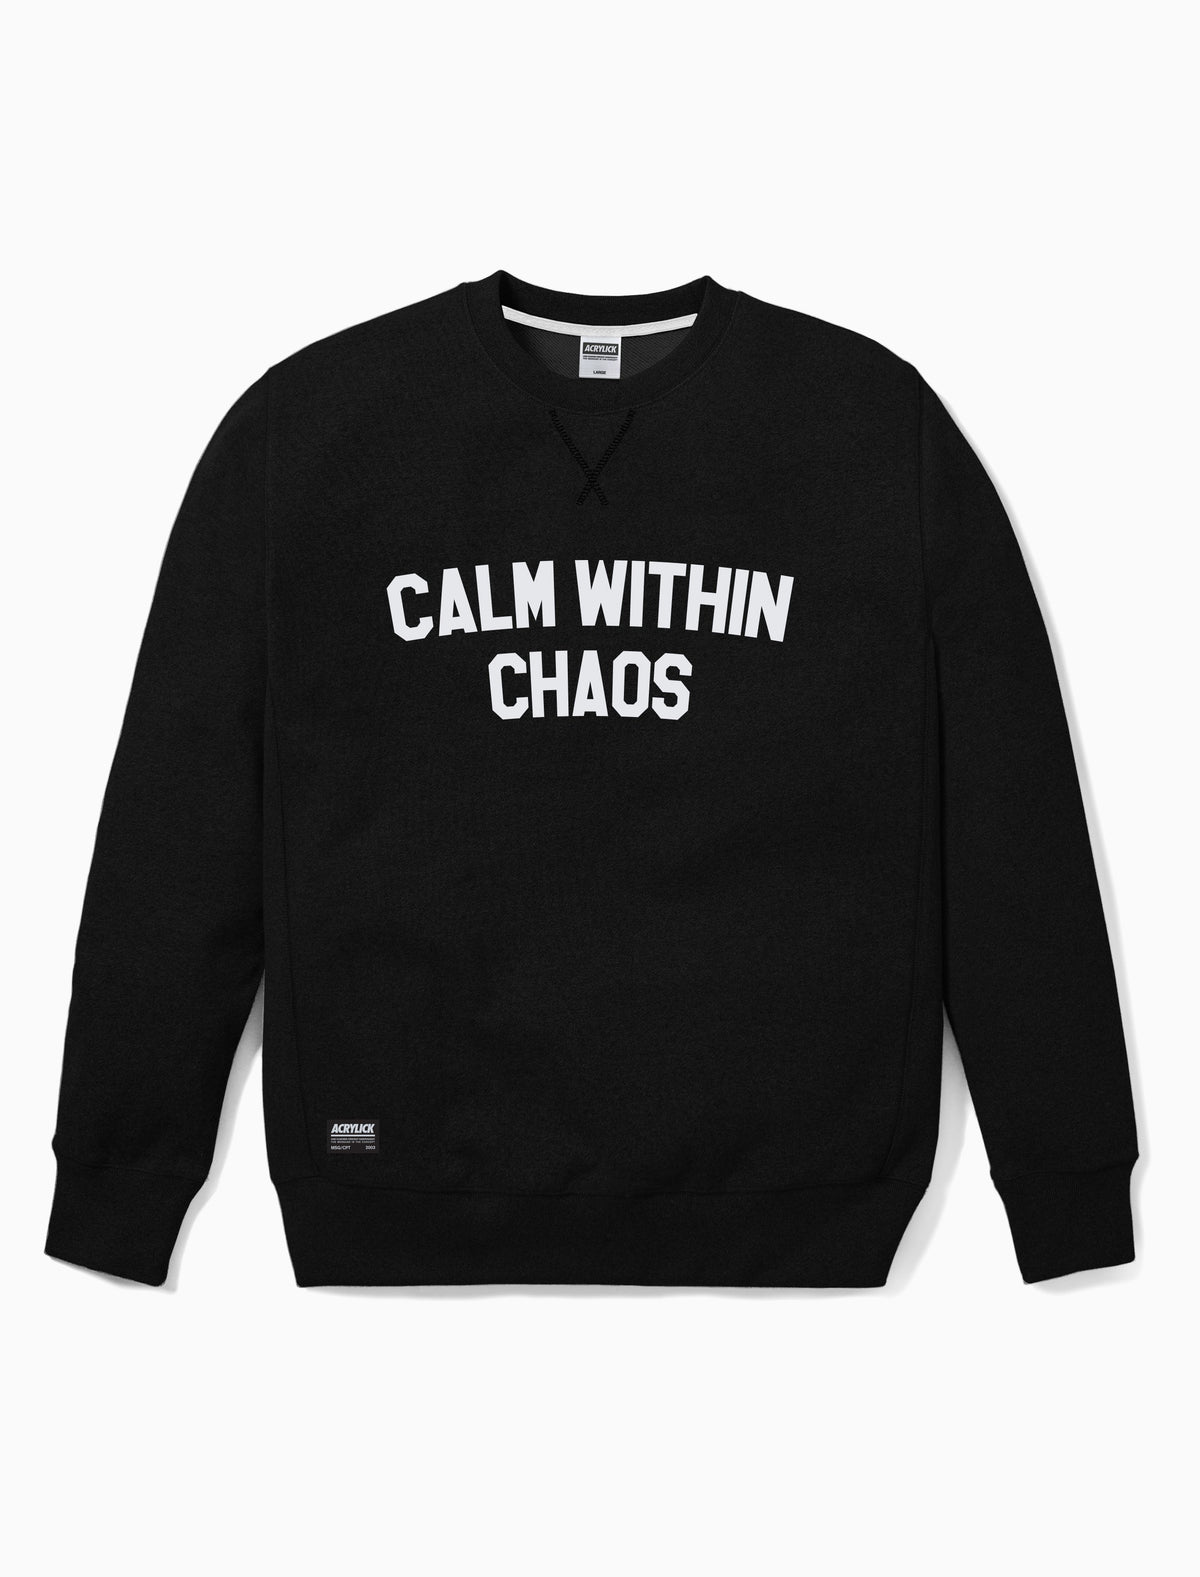 Acrylick - Calm within chaos - Crew neck - Sweatshirt